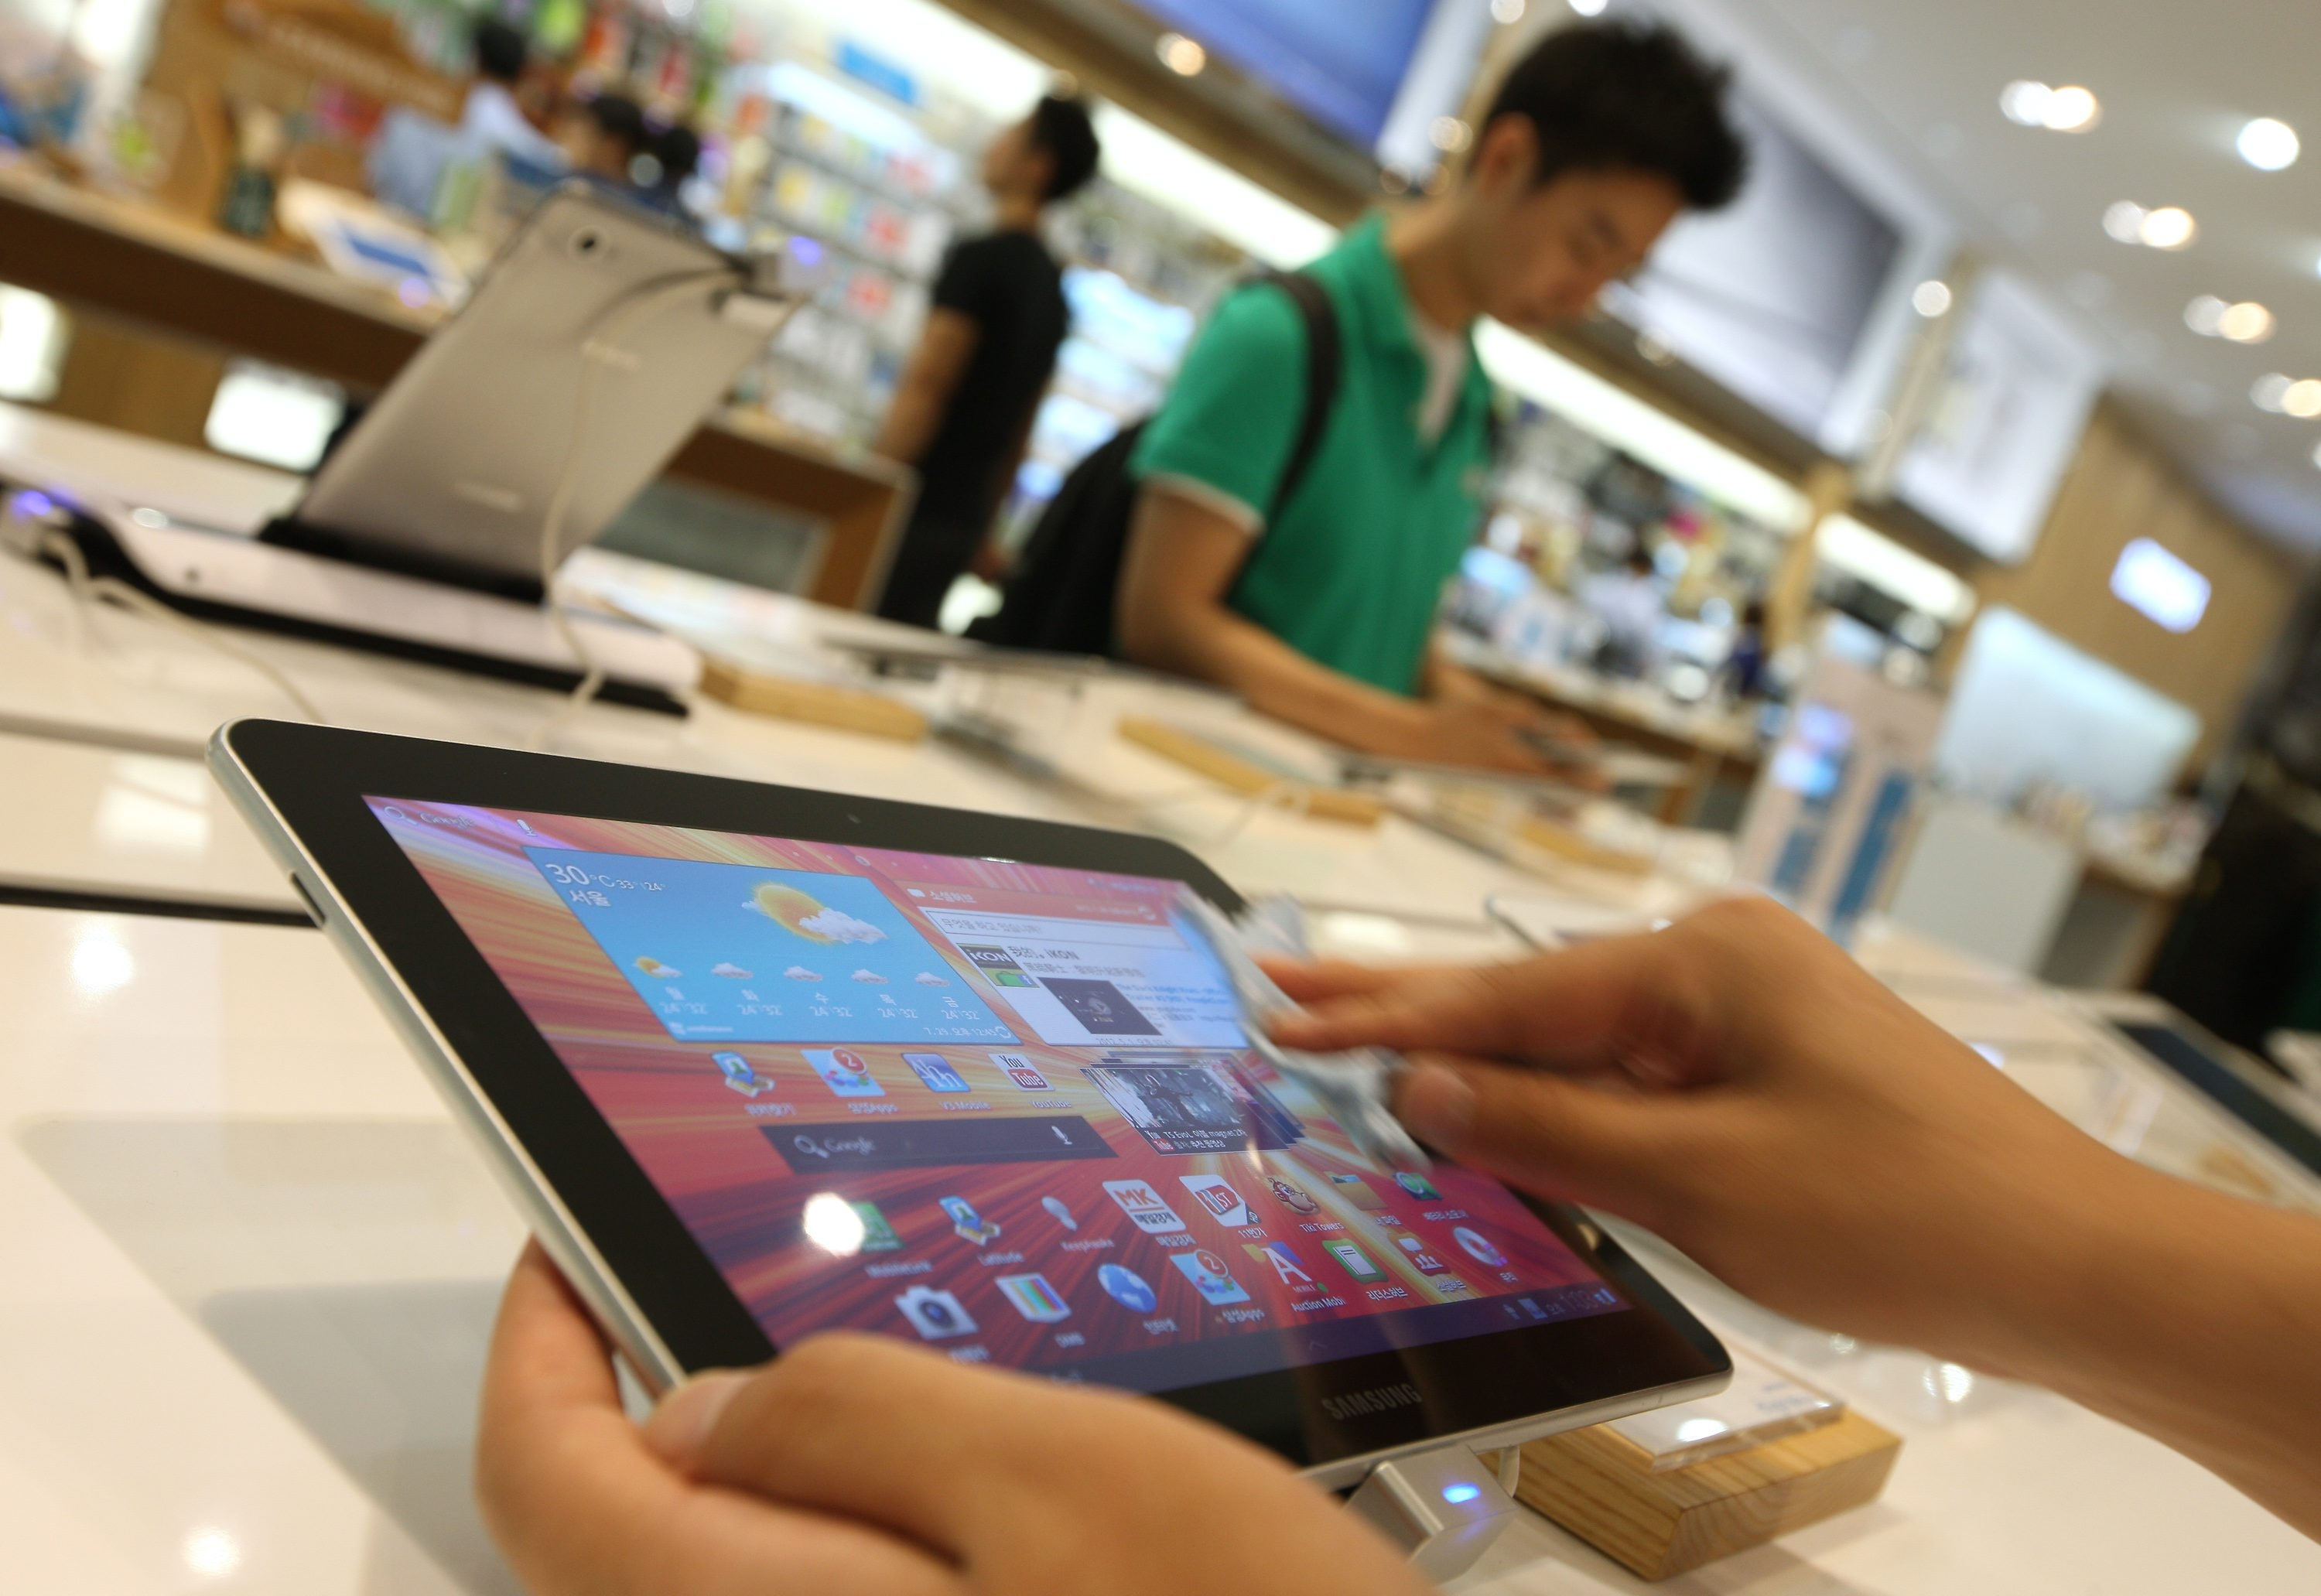 Bloomberg News  The best deals on a new tablet computer often can be found just before a new model comes out.